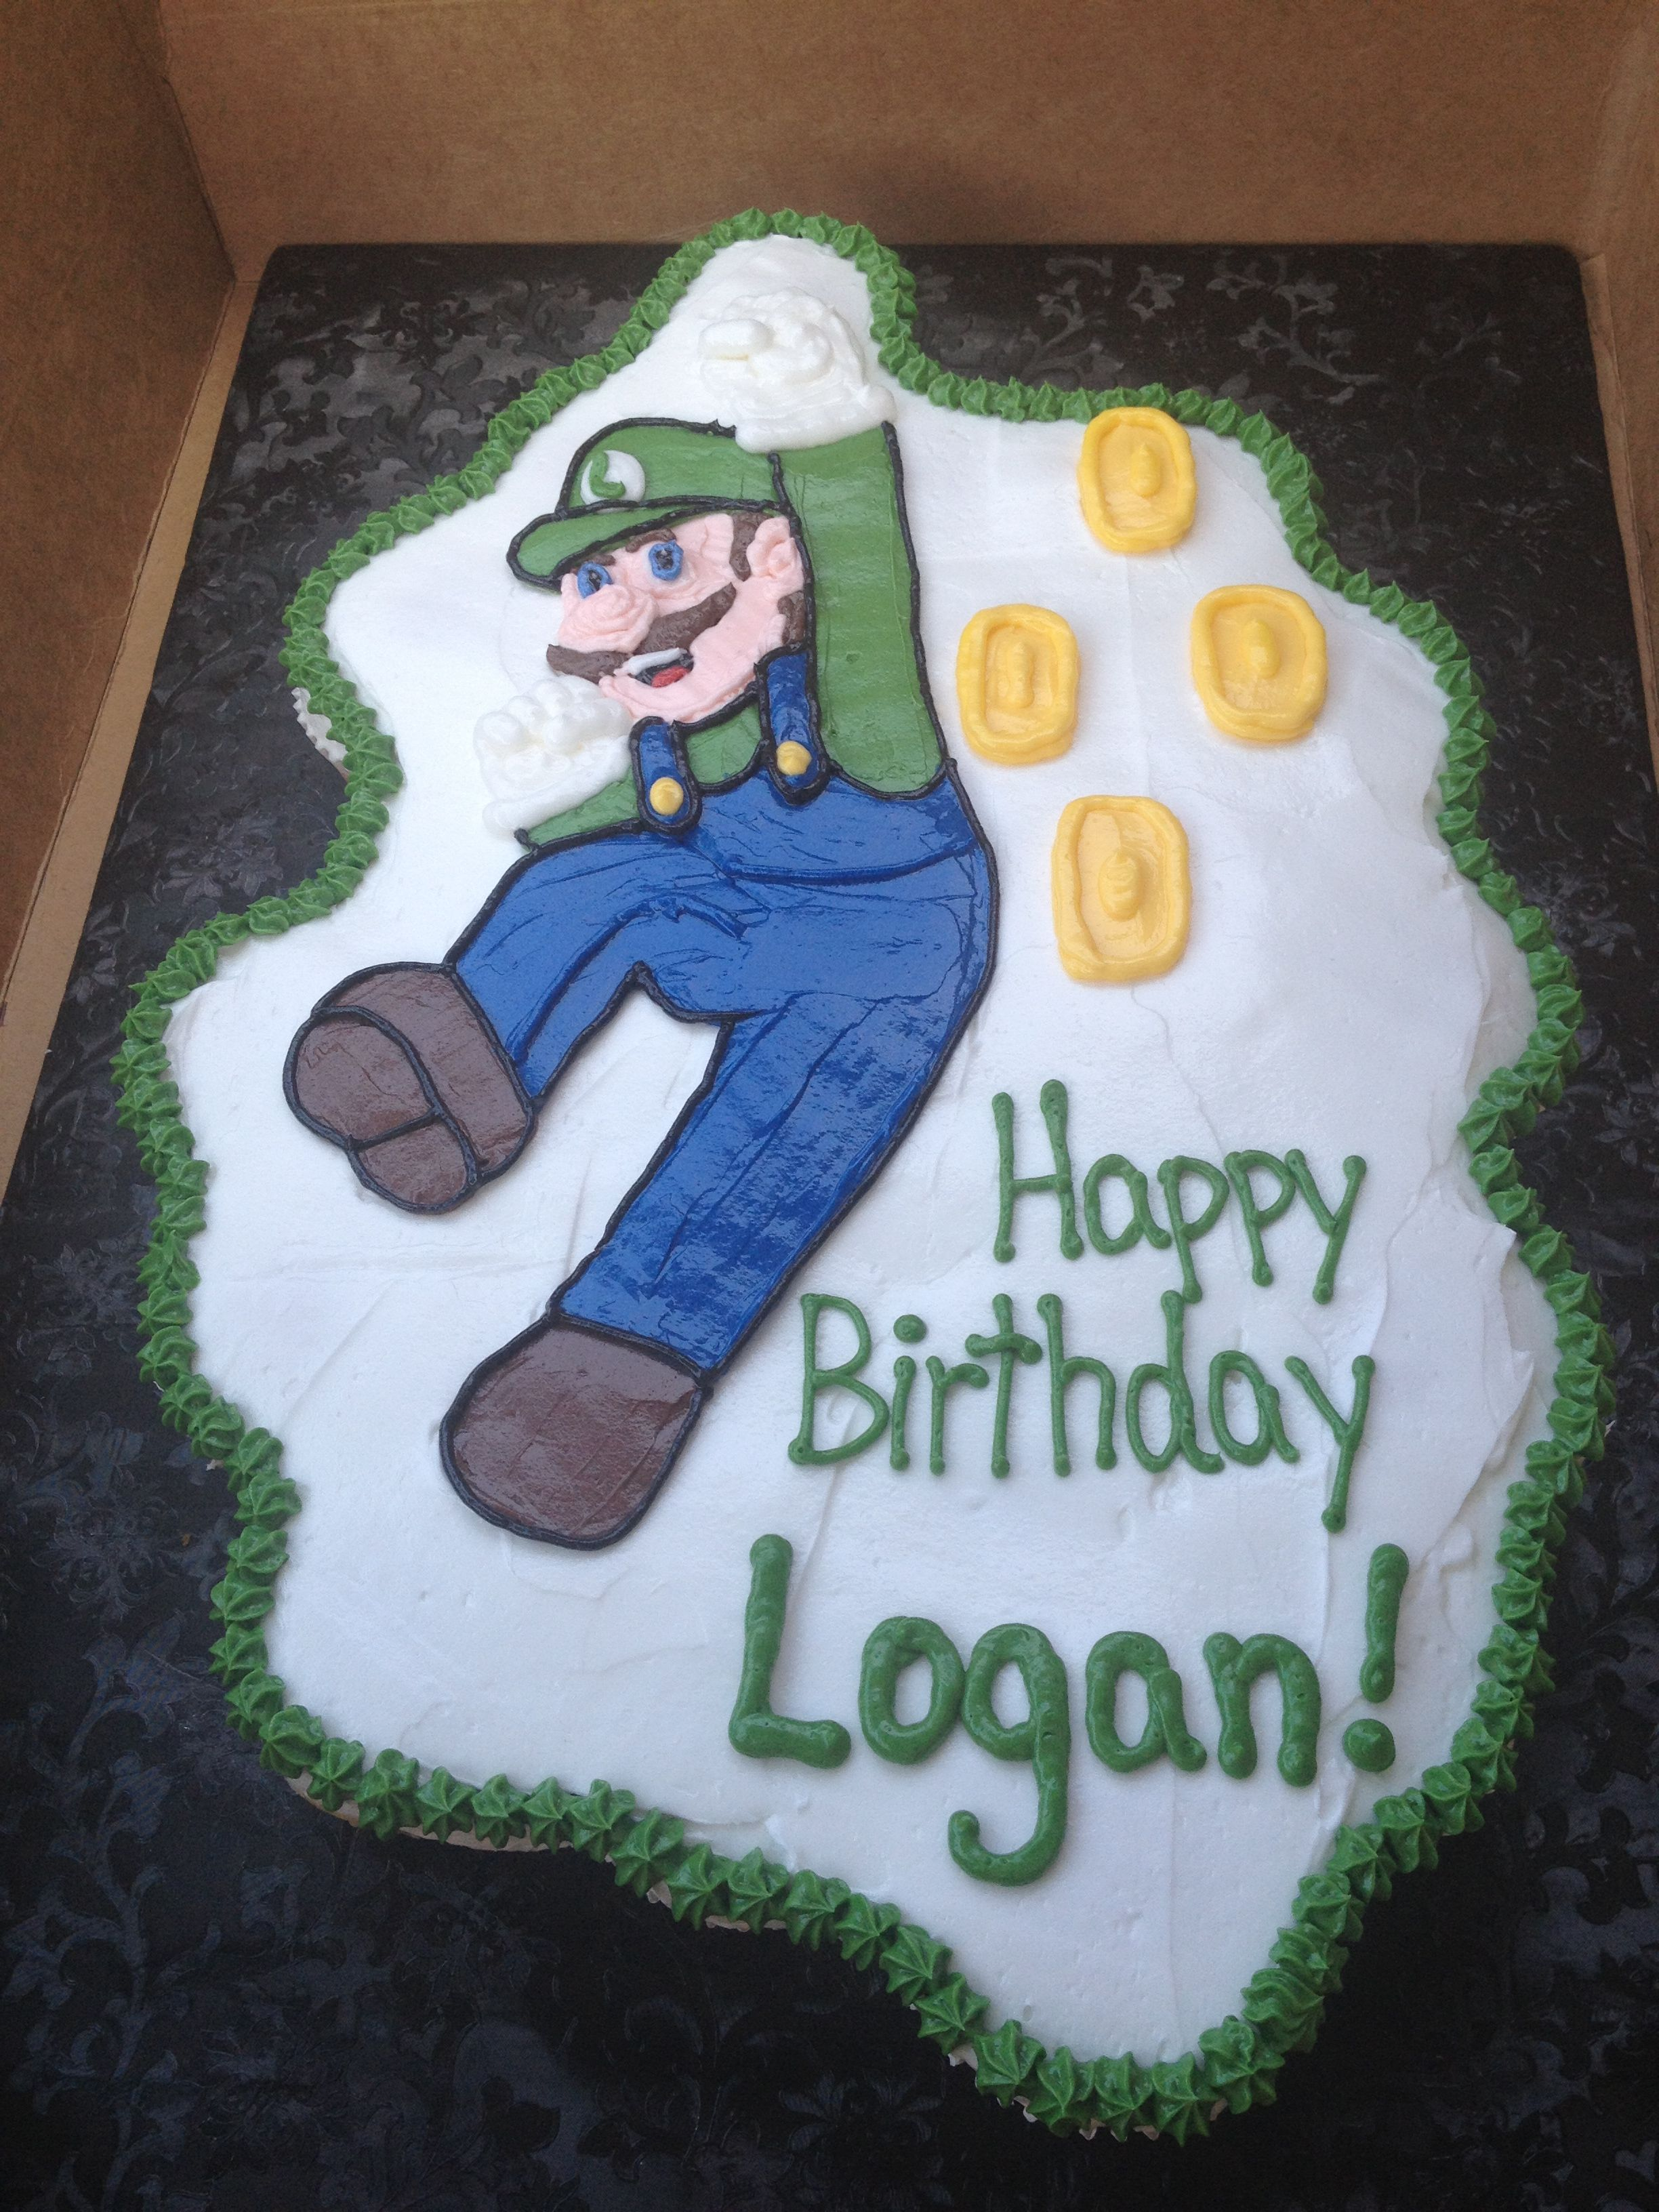 Luigi birthday cake we had made for Logan's birthday. It's a cupcake cake so no knives or forks needed.